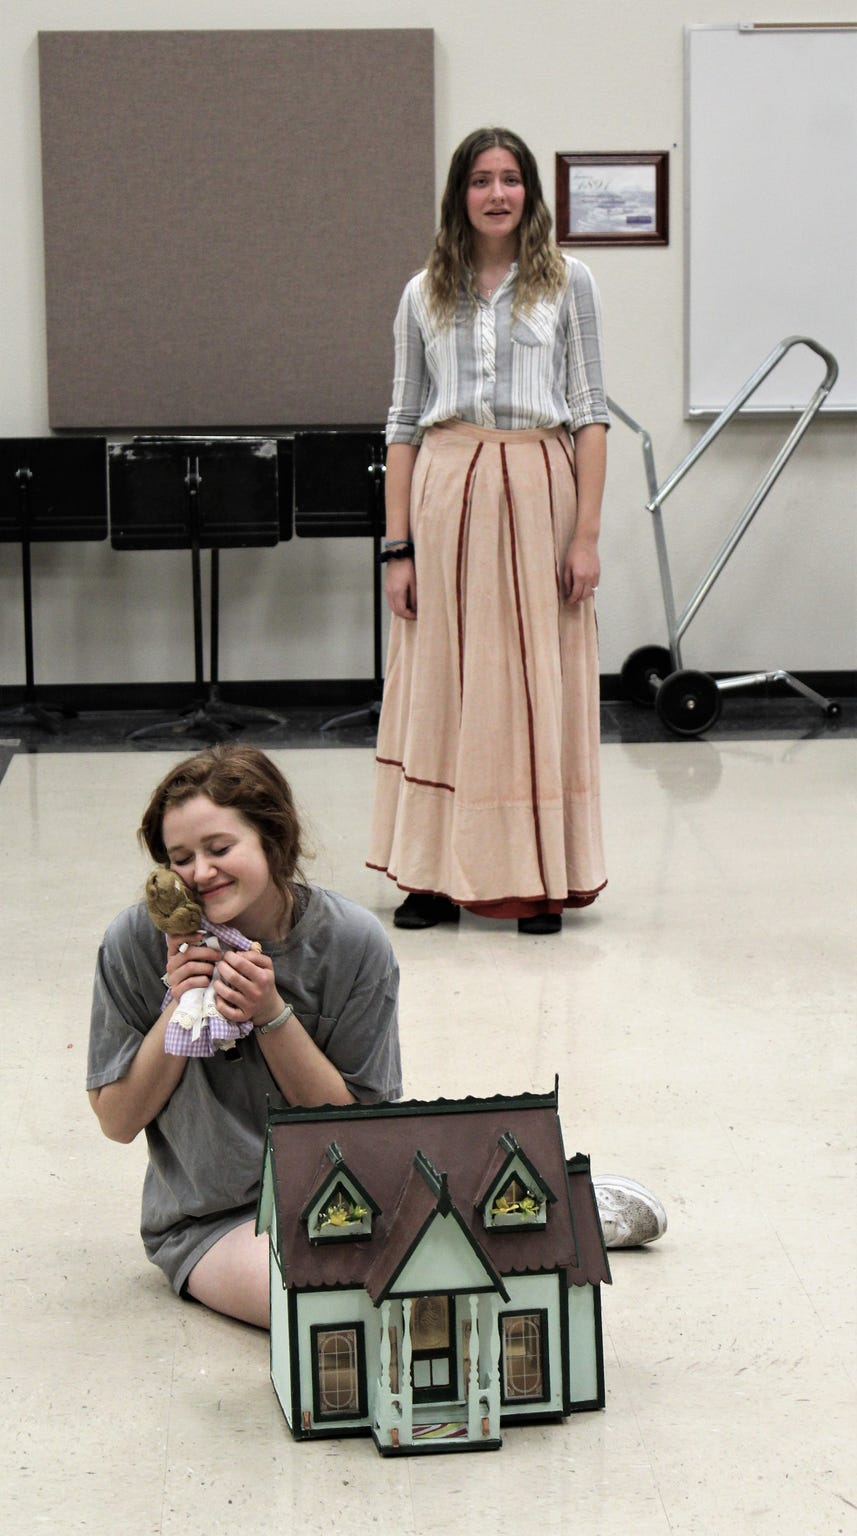 """Maddie Lowry, a Wylie High alum, is one of two Marys in Hardin-Simmons University's production of """"The Secret Garden,"""" which opens Wednesday. While Mary cradles a doll, the deceased Lily (Emily Hatch) sings to open the musical. HSU was in rehearsal off stage this week."""